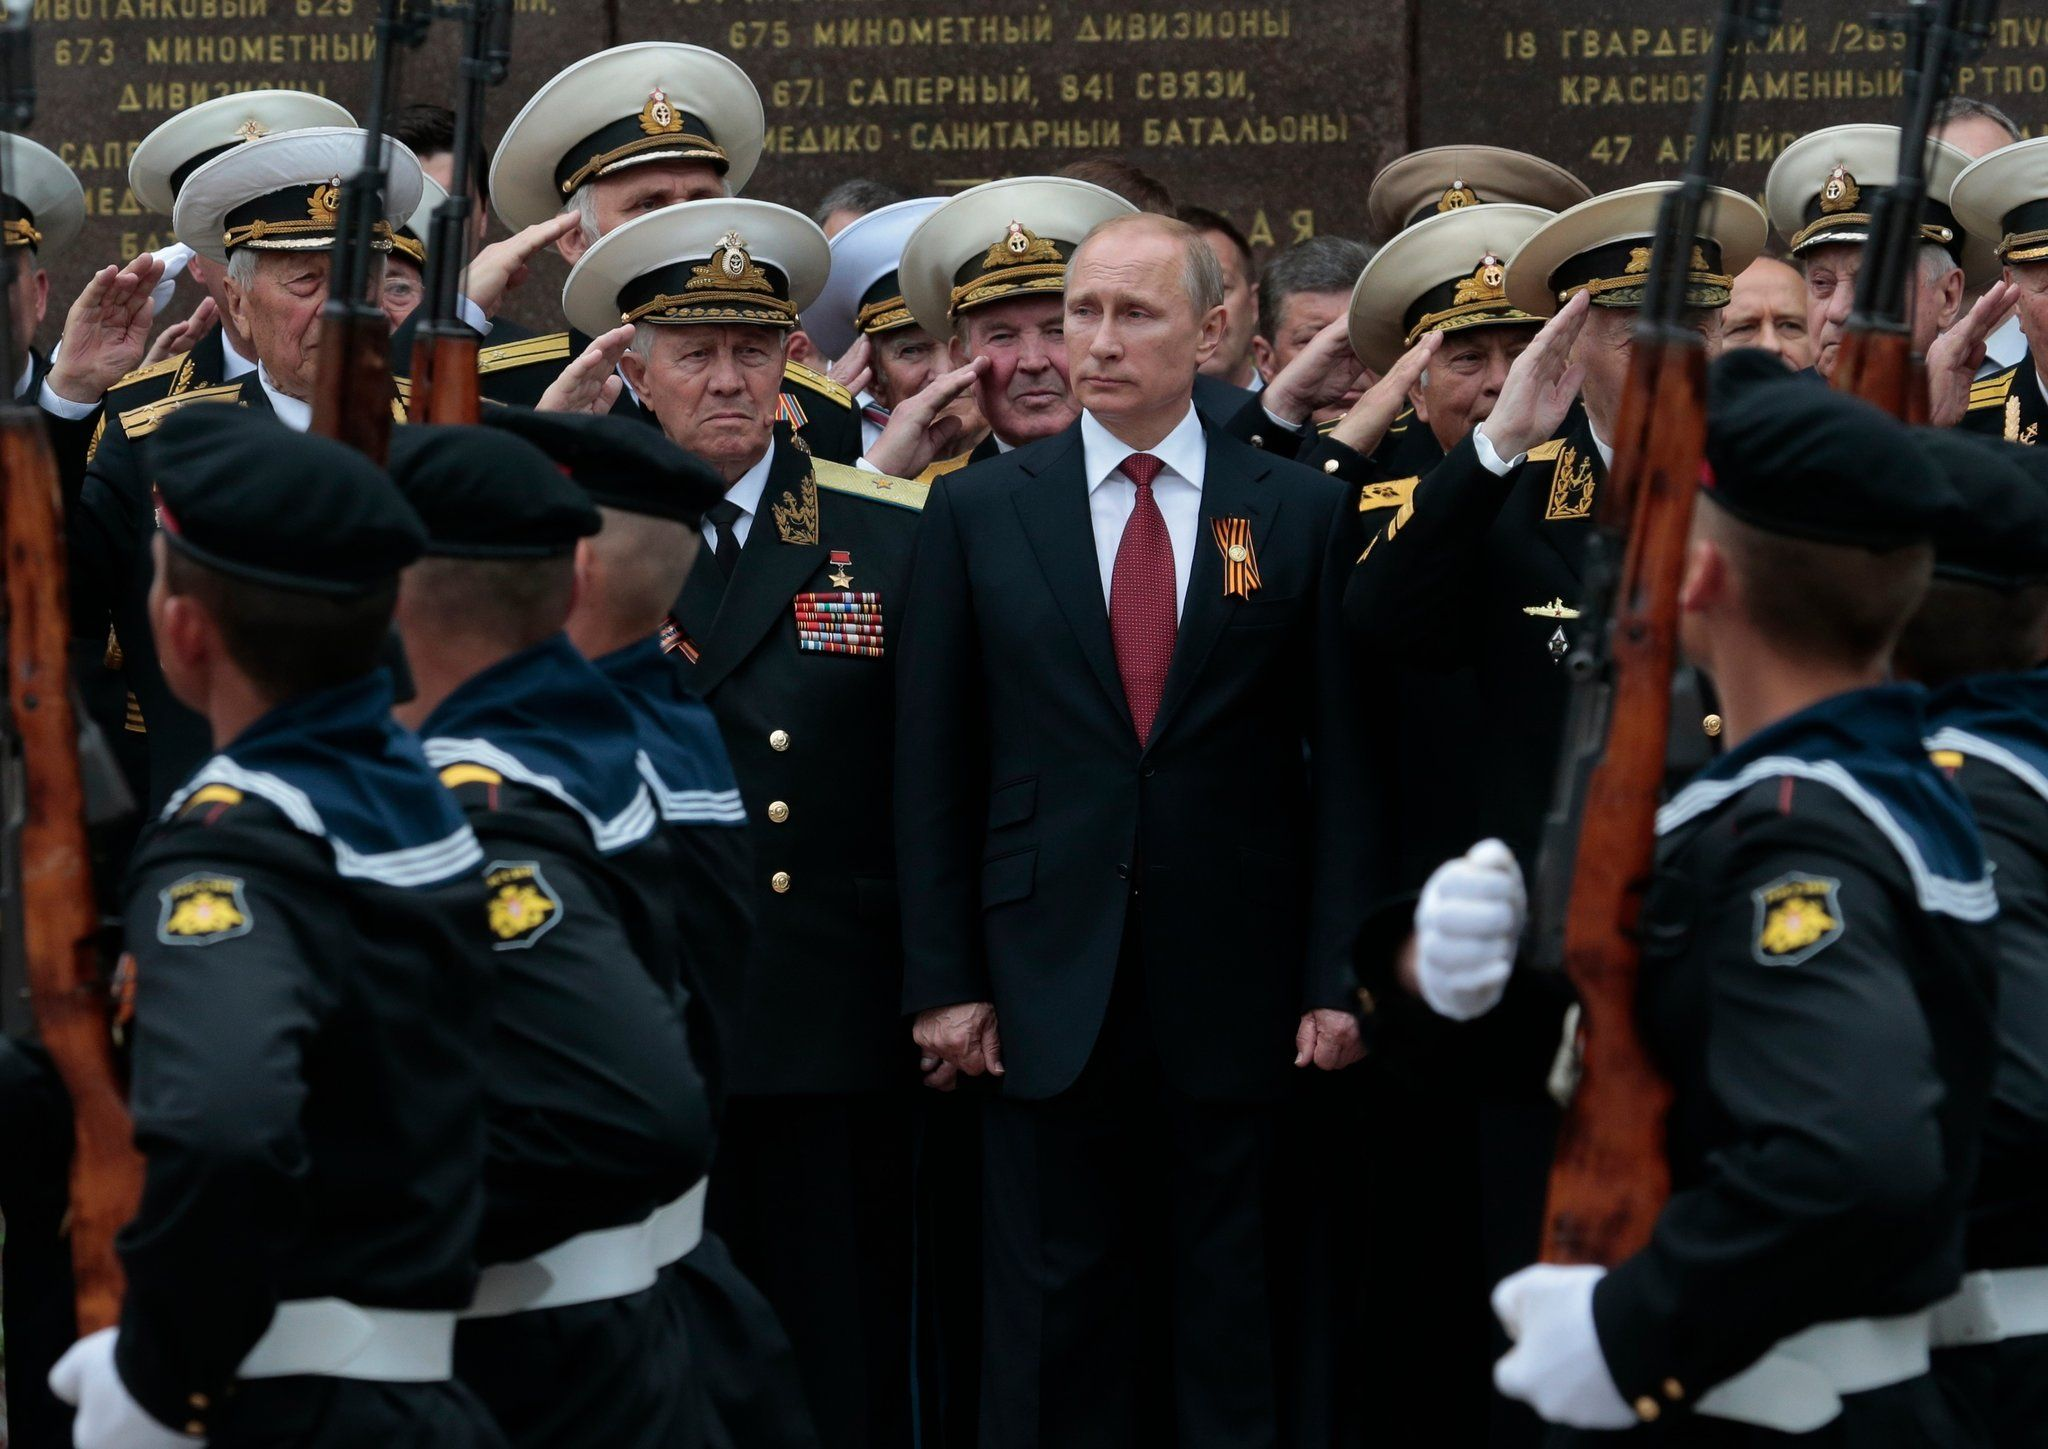 Image result for Images of Russian Oligarchs celebrating